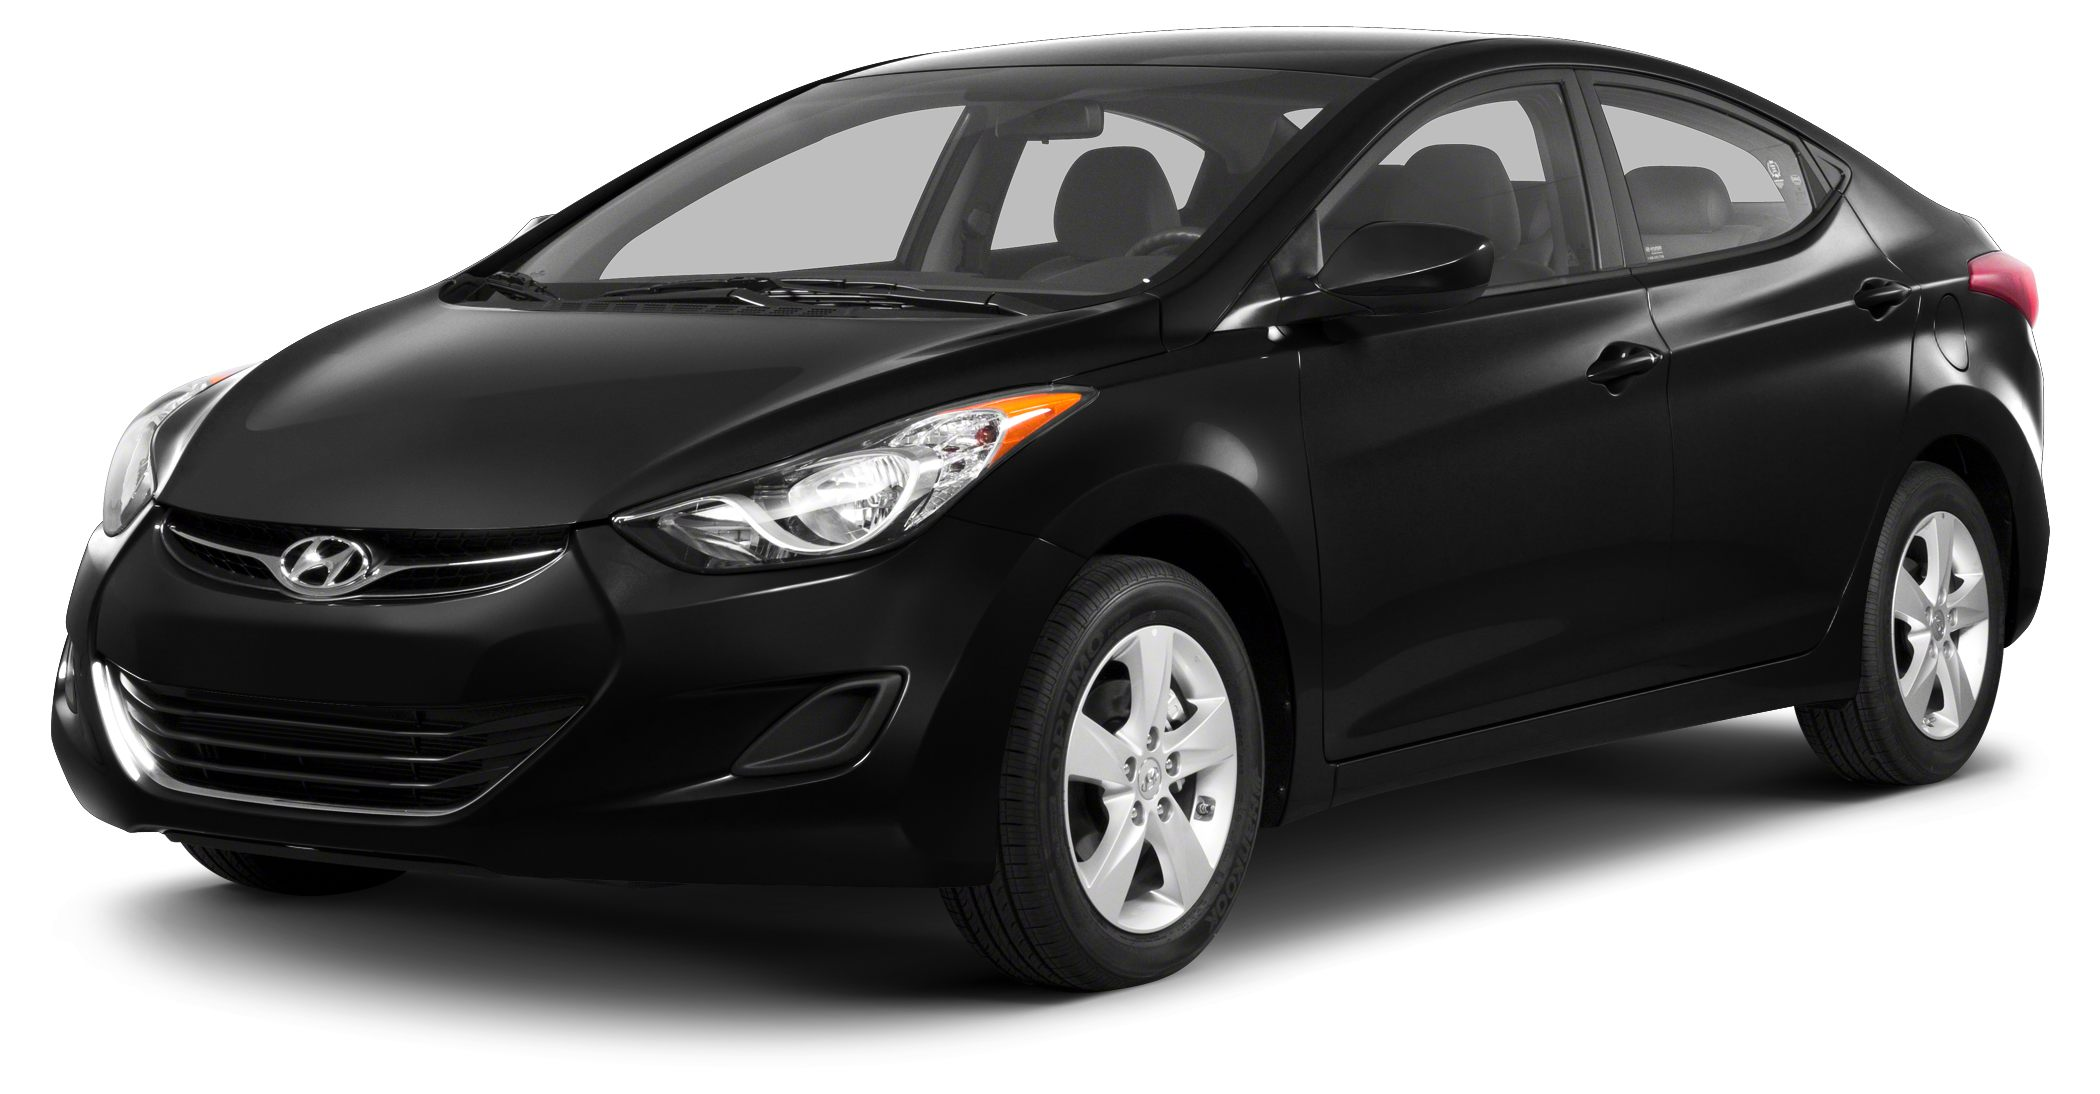 2013 Hyundai Elantra GLS HYUNDAI CERTIFIED ----- JUST 19K MILES ----- all serviced by us ----- Pre